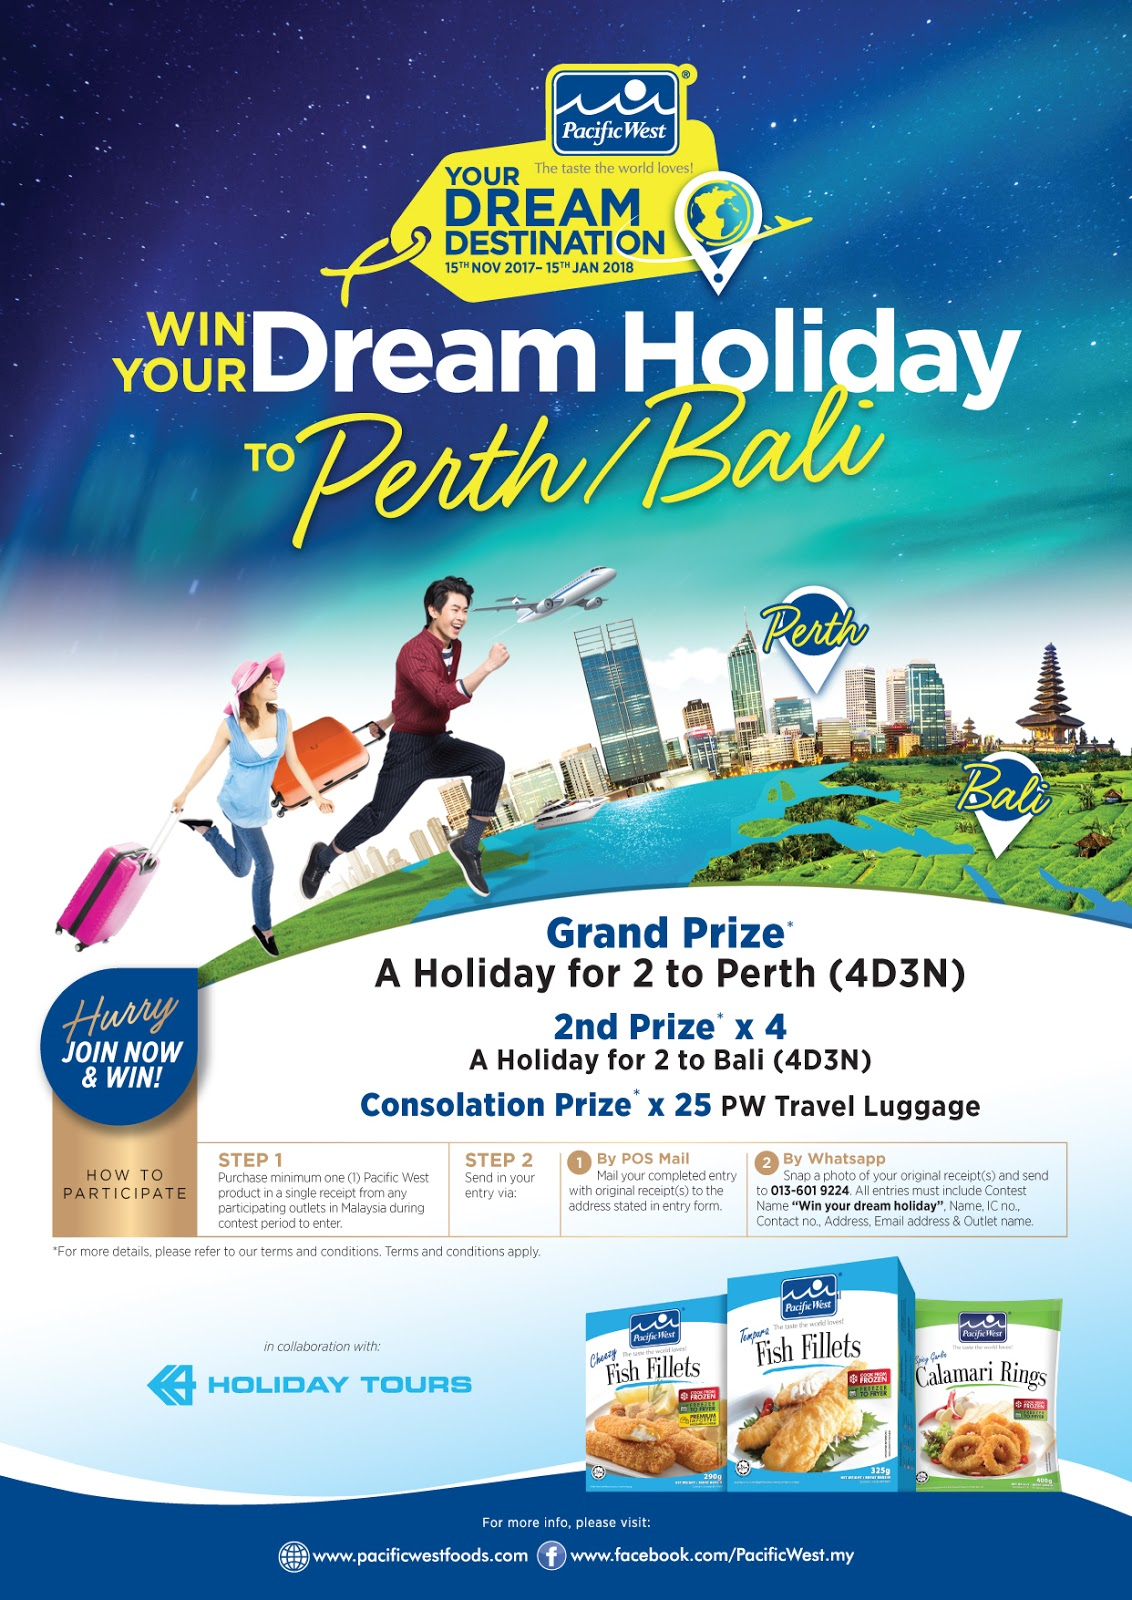 produk pacific west, cheezy fillet dan resepi mudah, win your dream holiday